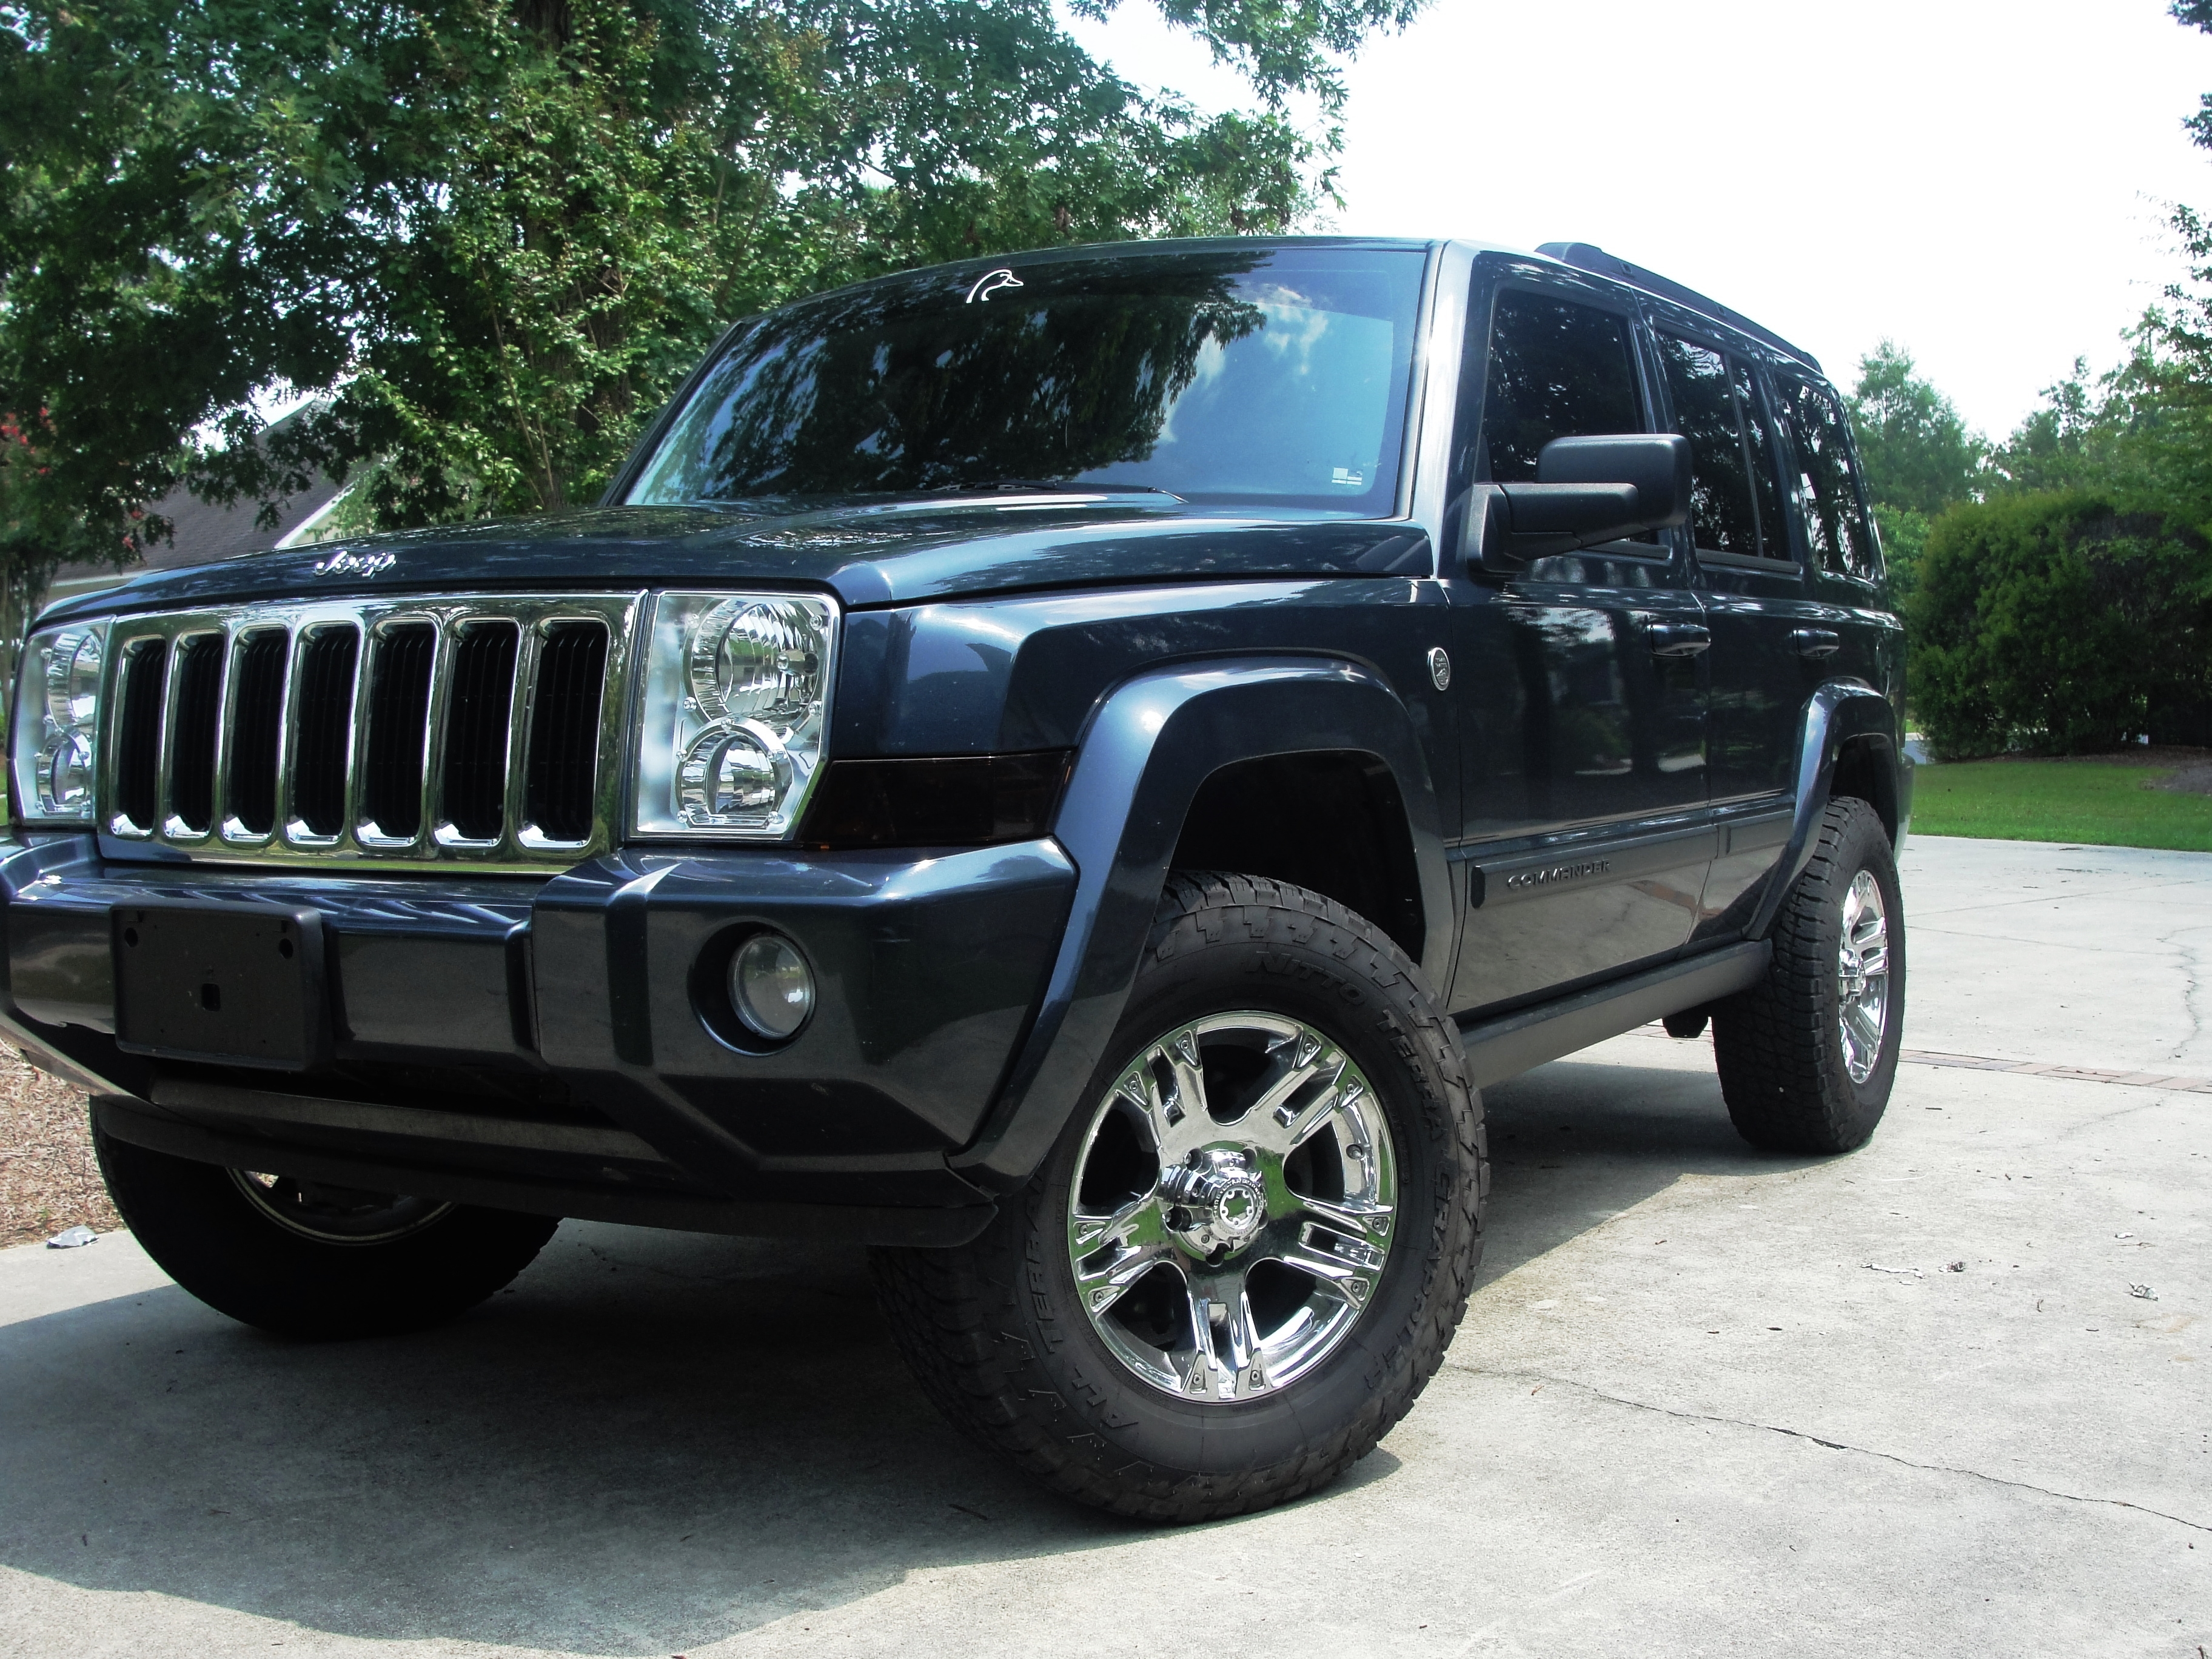 mikey-day 2007 jeep commander specs, photos, modification info at